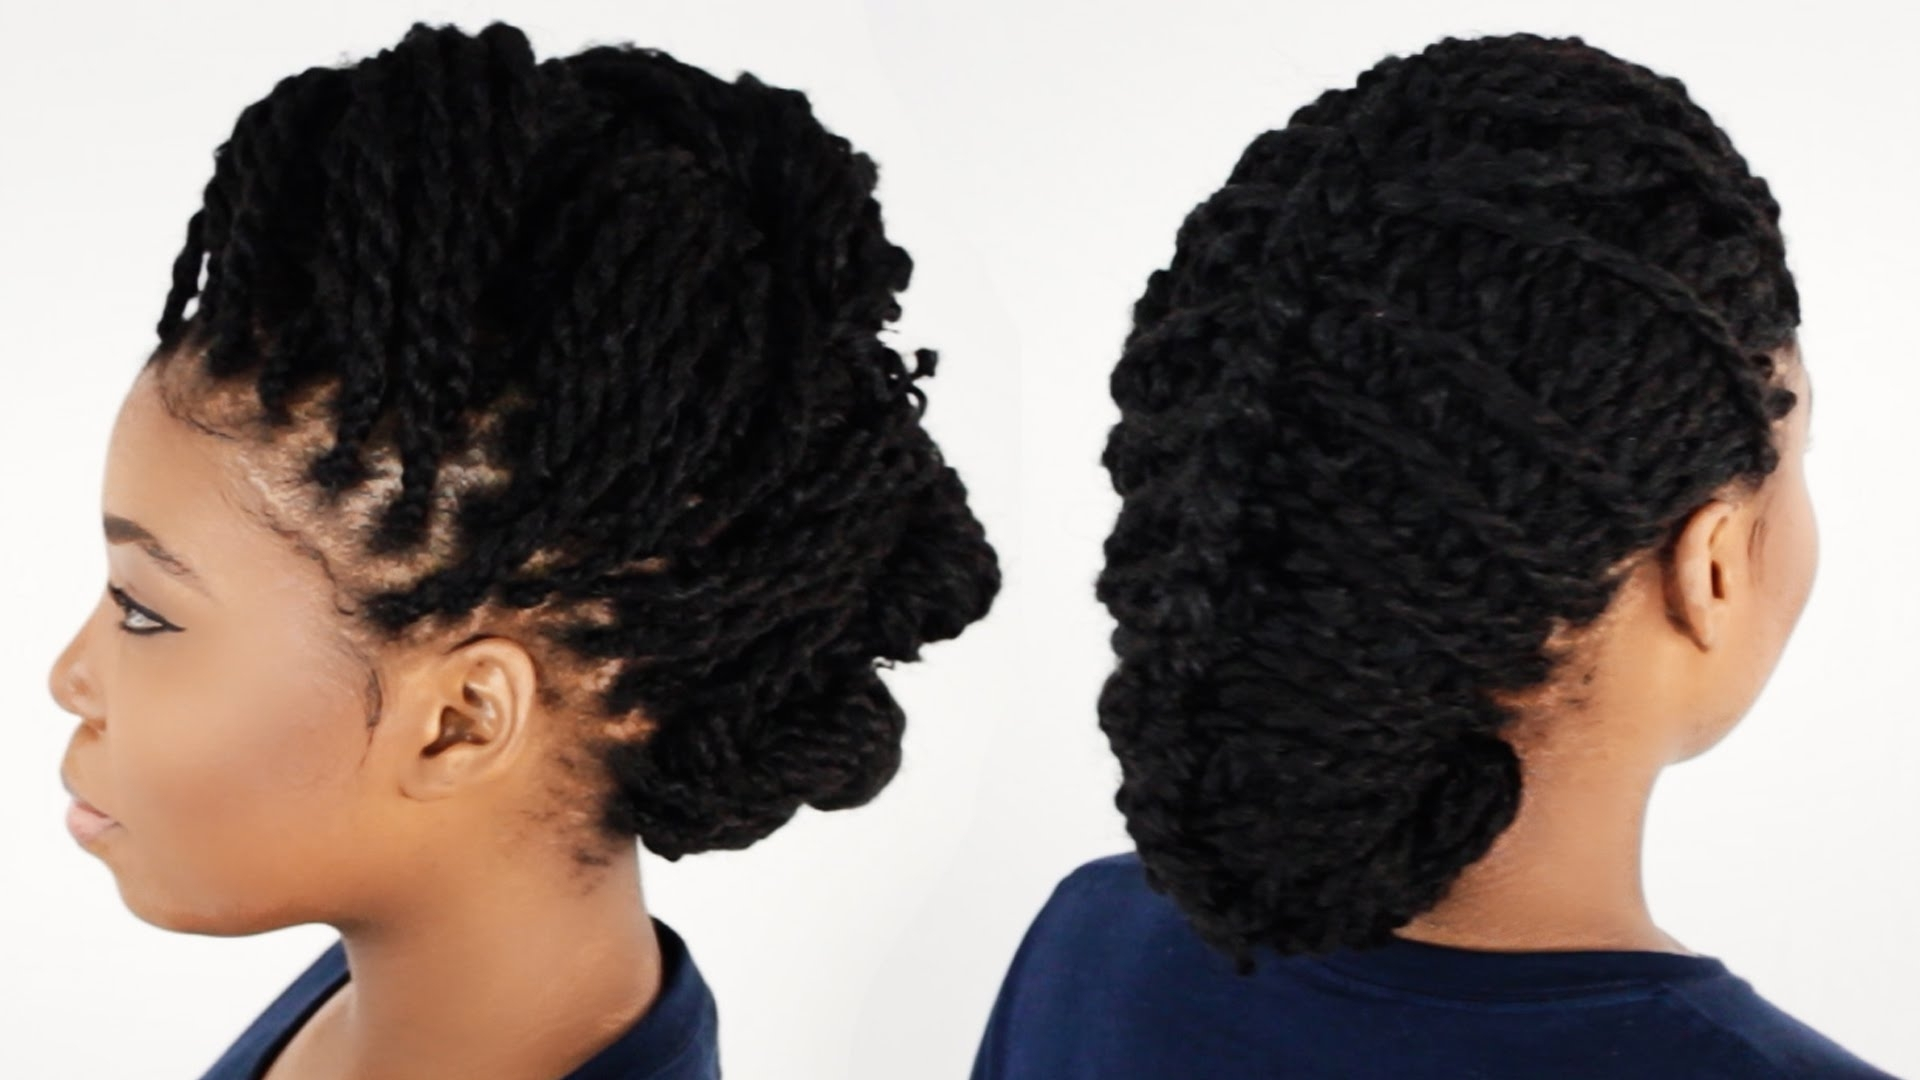 3 Ways To Style Your Kinky Twist Hairstyles Tutorial 6 Of 7 – Youtube For Preferred Kinky Braid Hairstyles (View 1 of 15)